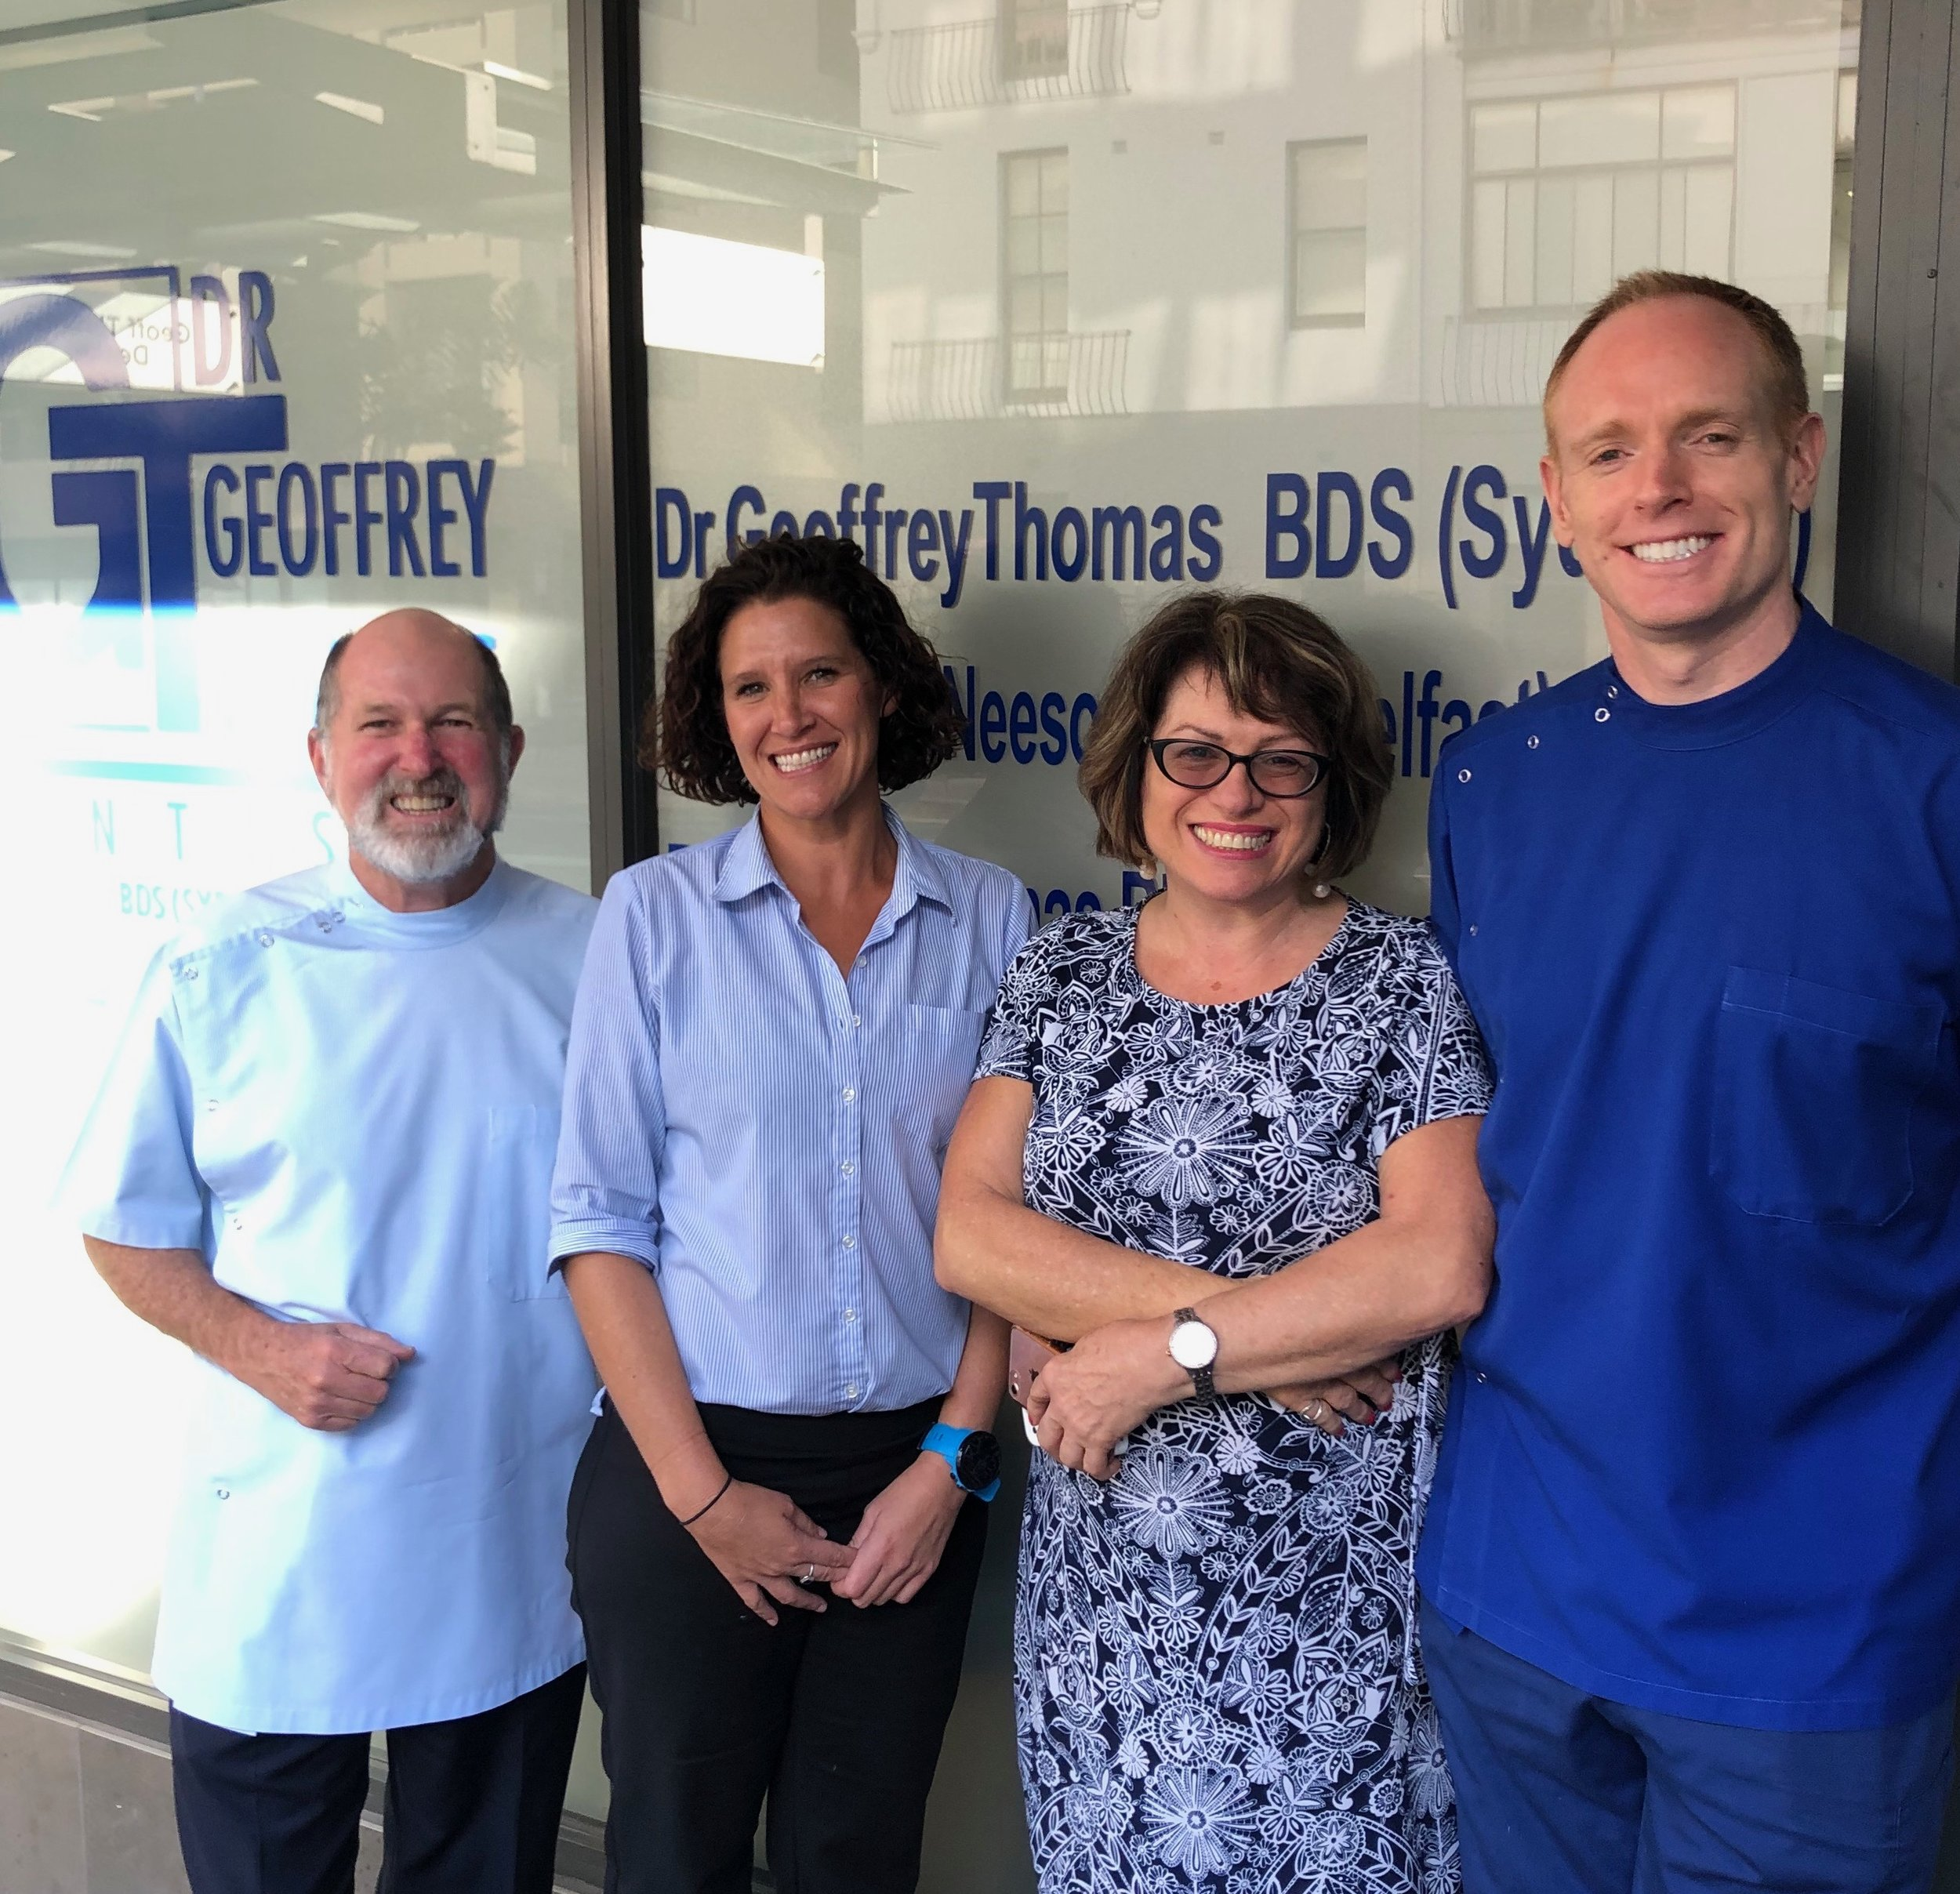 Dr Geoffrey Thomas - Principal Dentist, Courtney - Practice Manager, Anona Le Page - Community Northern Beaches and  Dr Stephen Neeson - Dentist